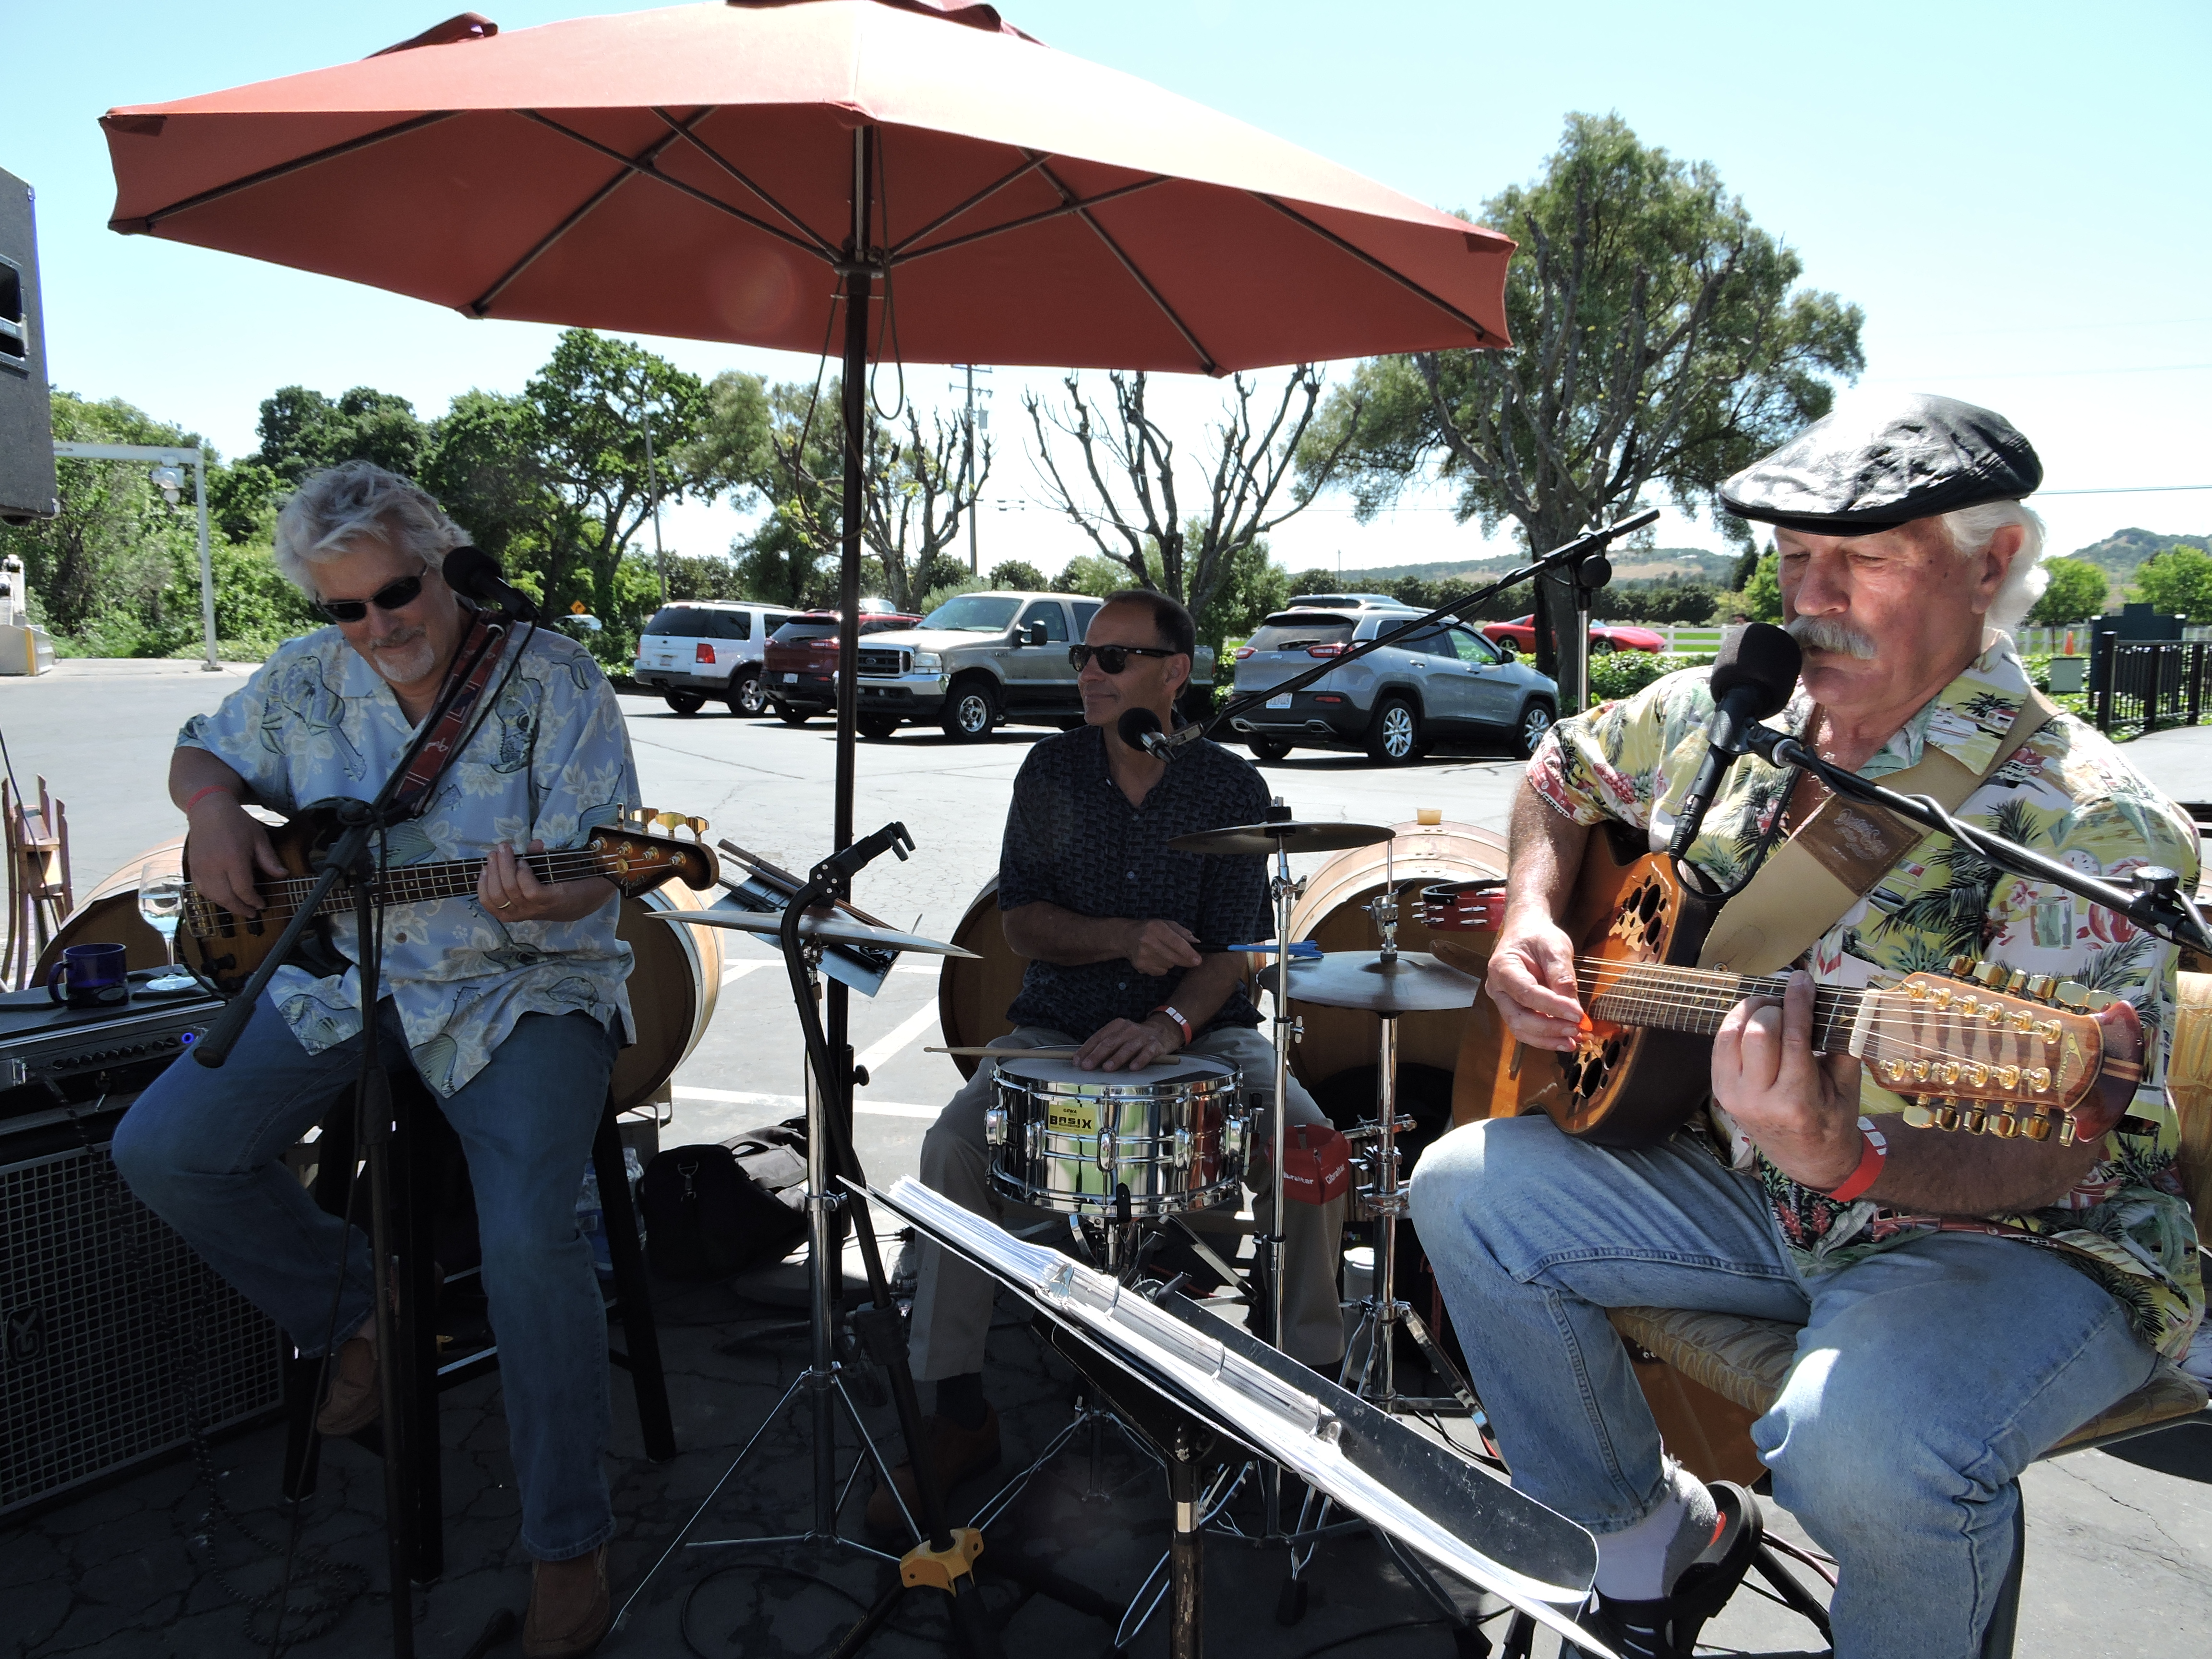 Local bands kept the crowds dancing and singing along at all the locations. This group performed all afternoon at Wooden Valley Winery.